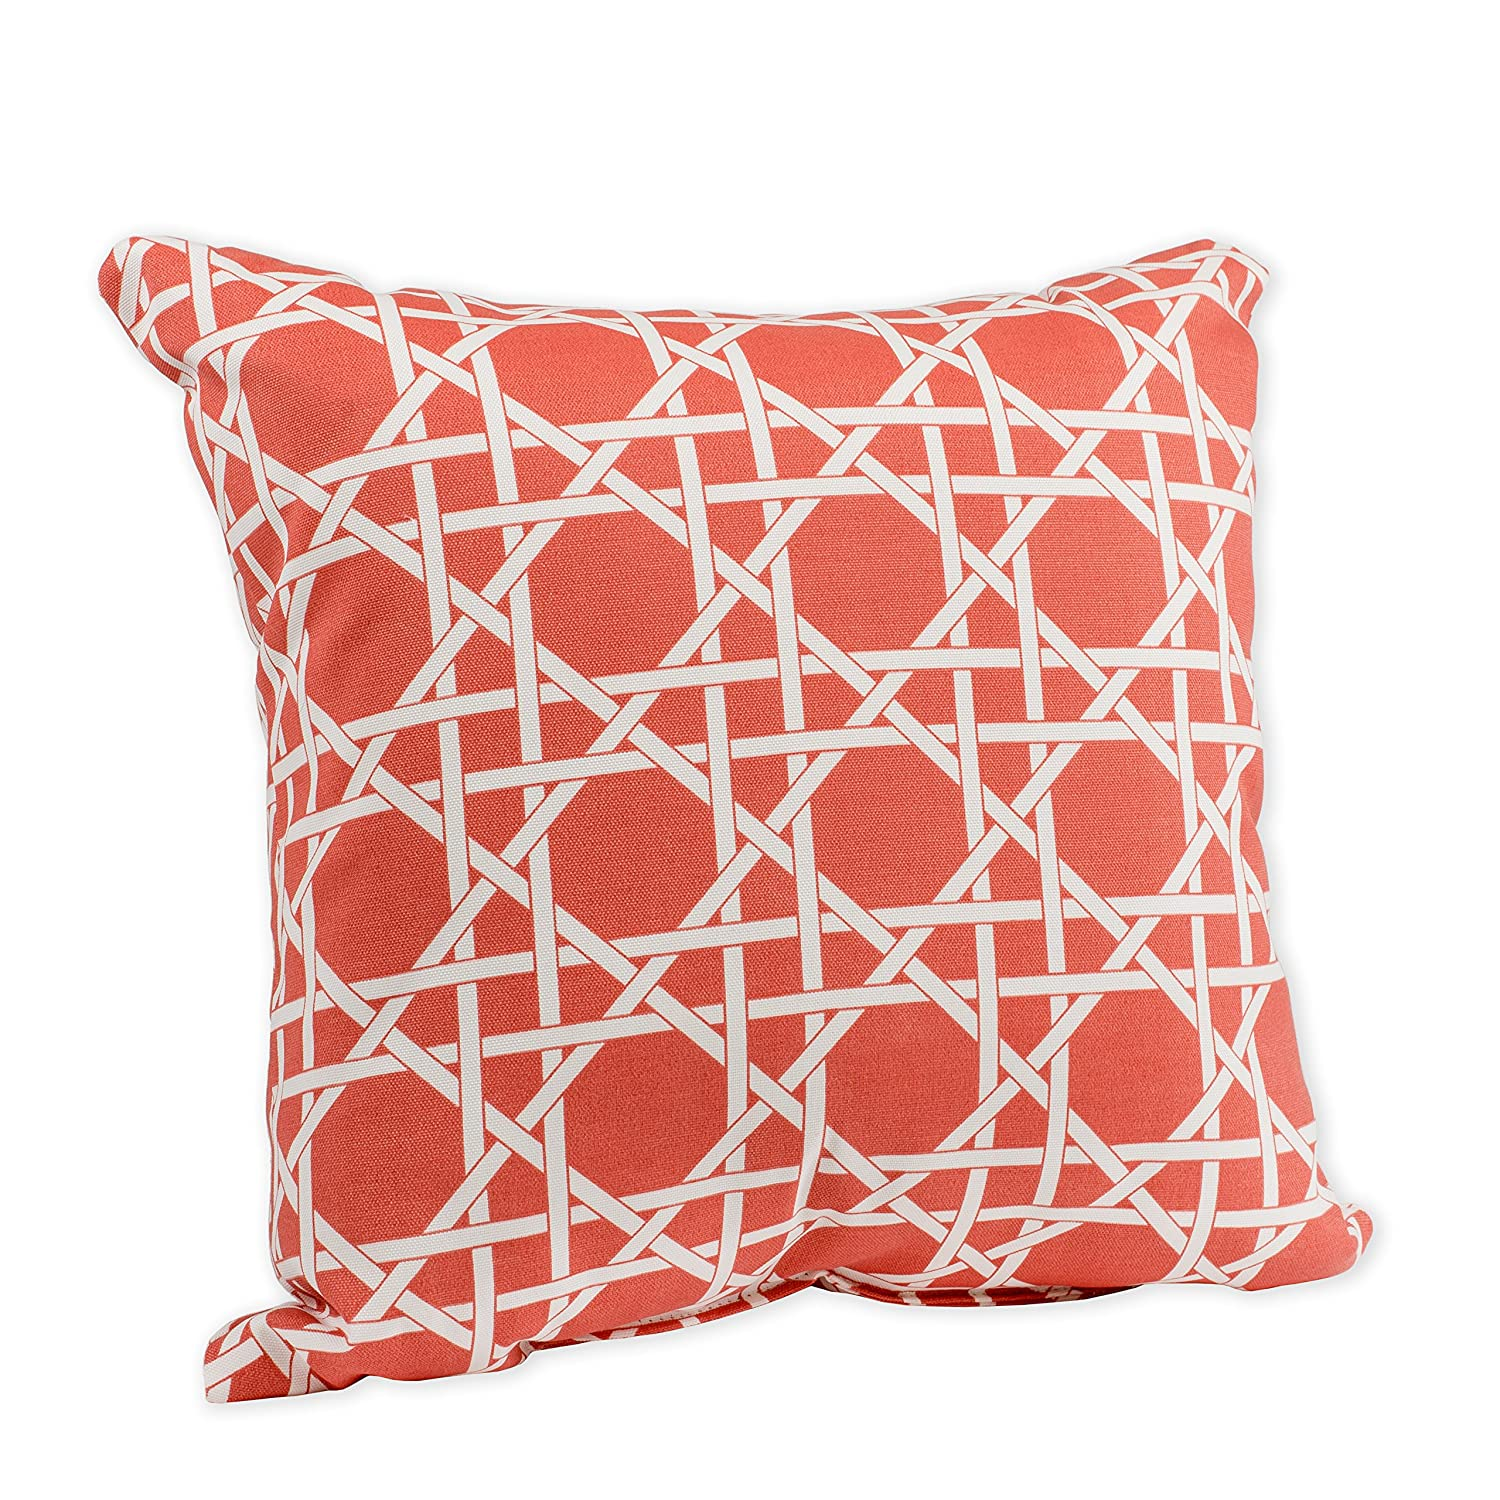 Kane Coral Pink and White Weave Print 16 x 16 Indoor Outdoor Throw Pillow